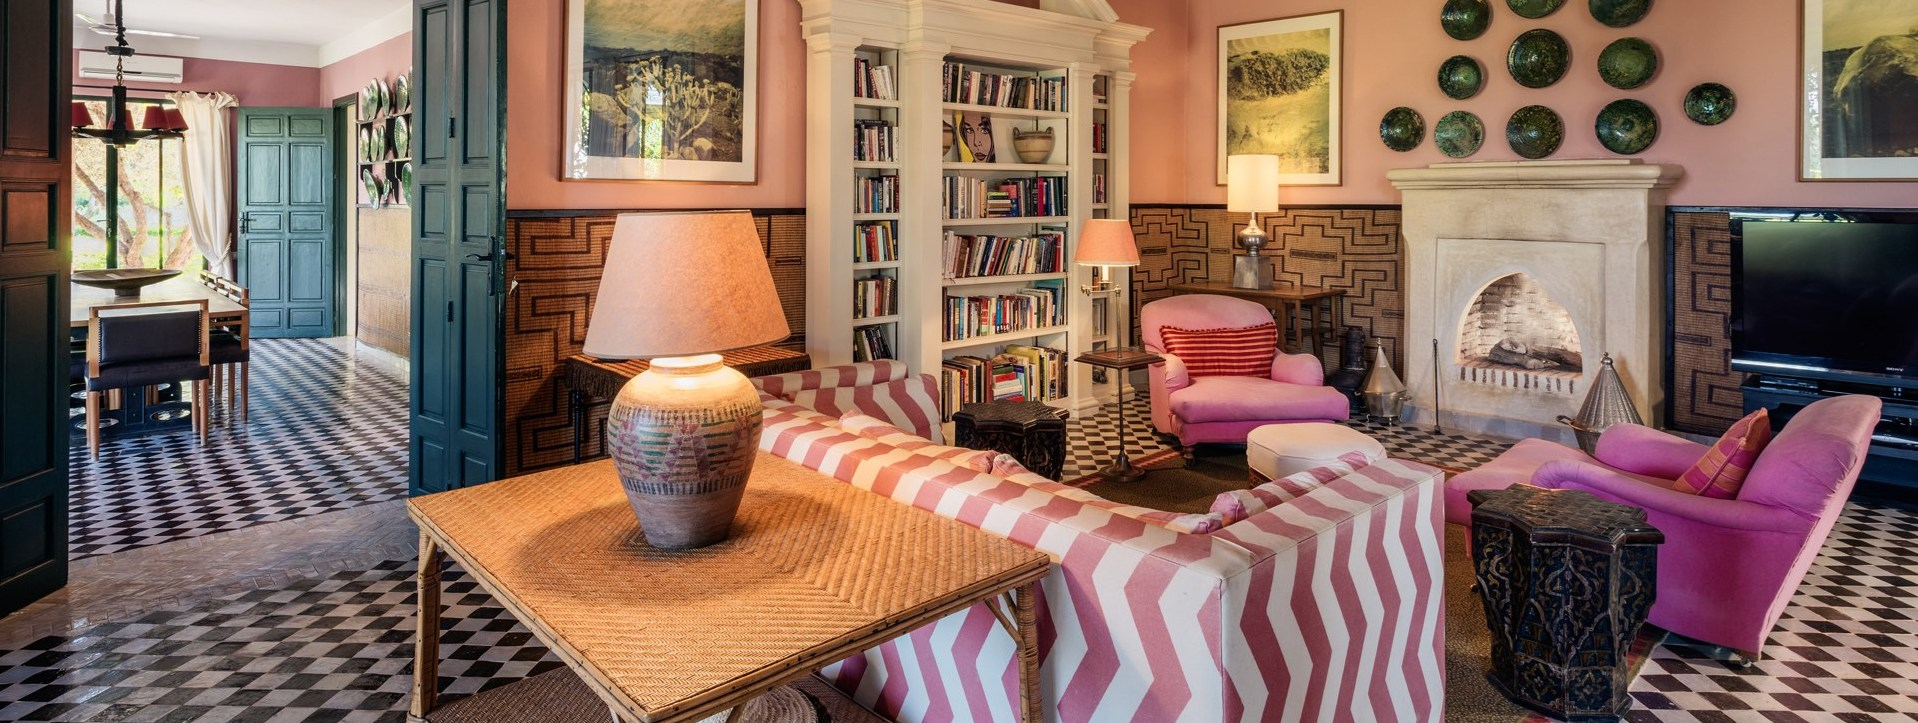 dar-des-roses-blanches-lounge